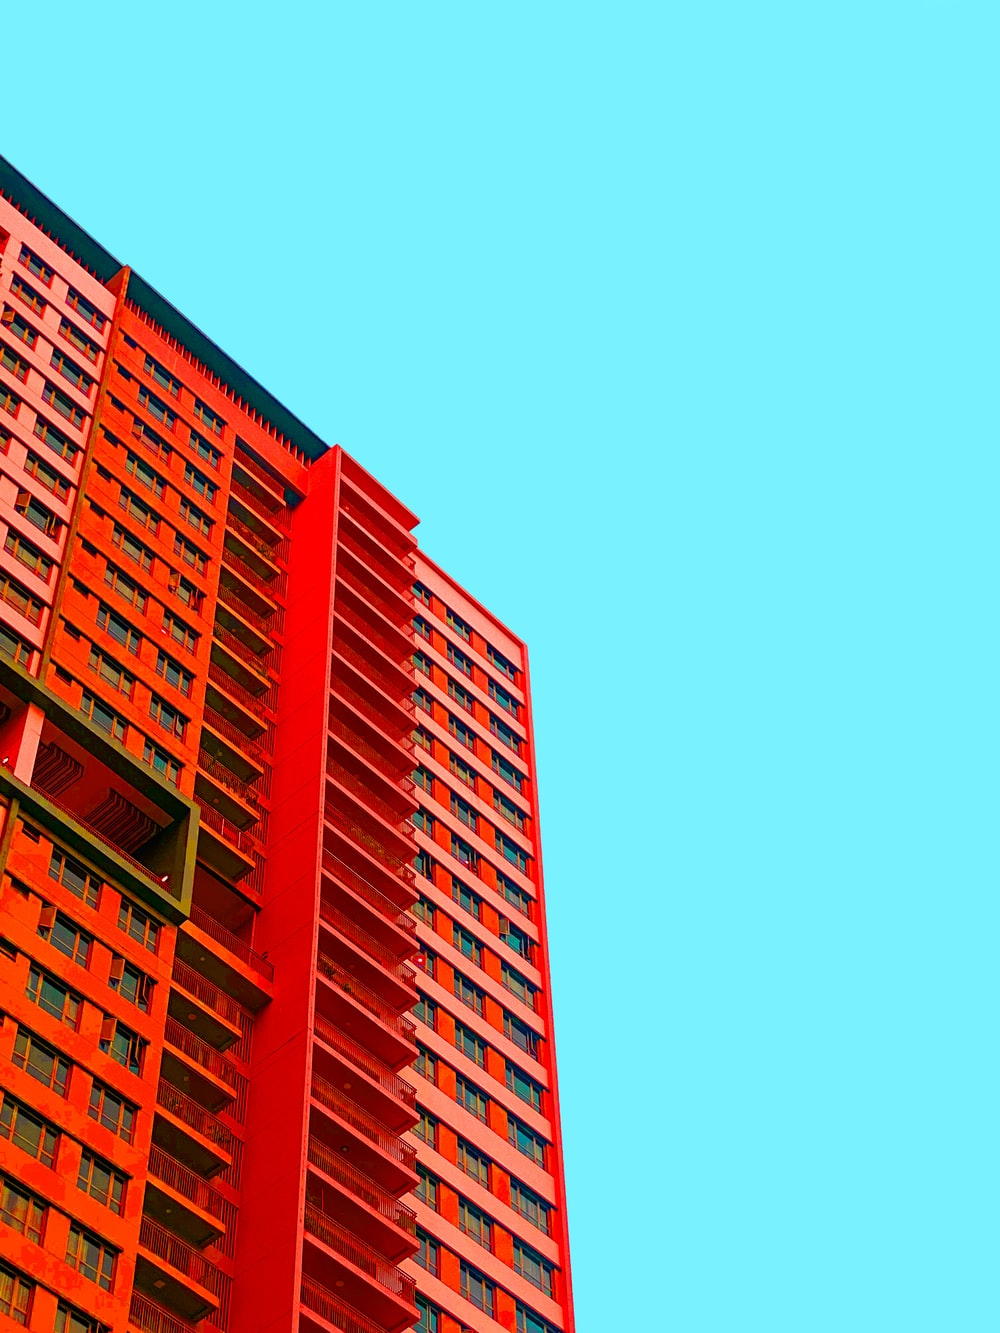 red concrete building under blue sky during daytime